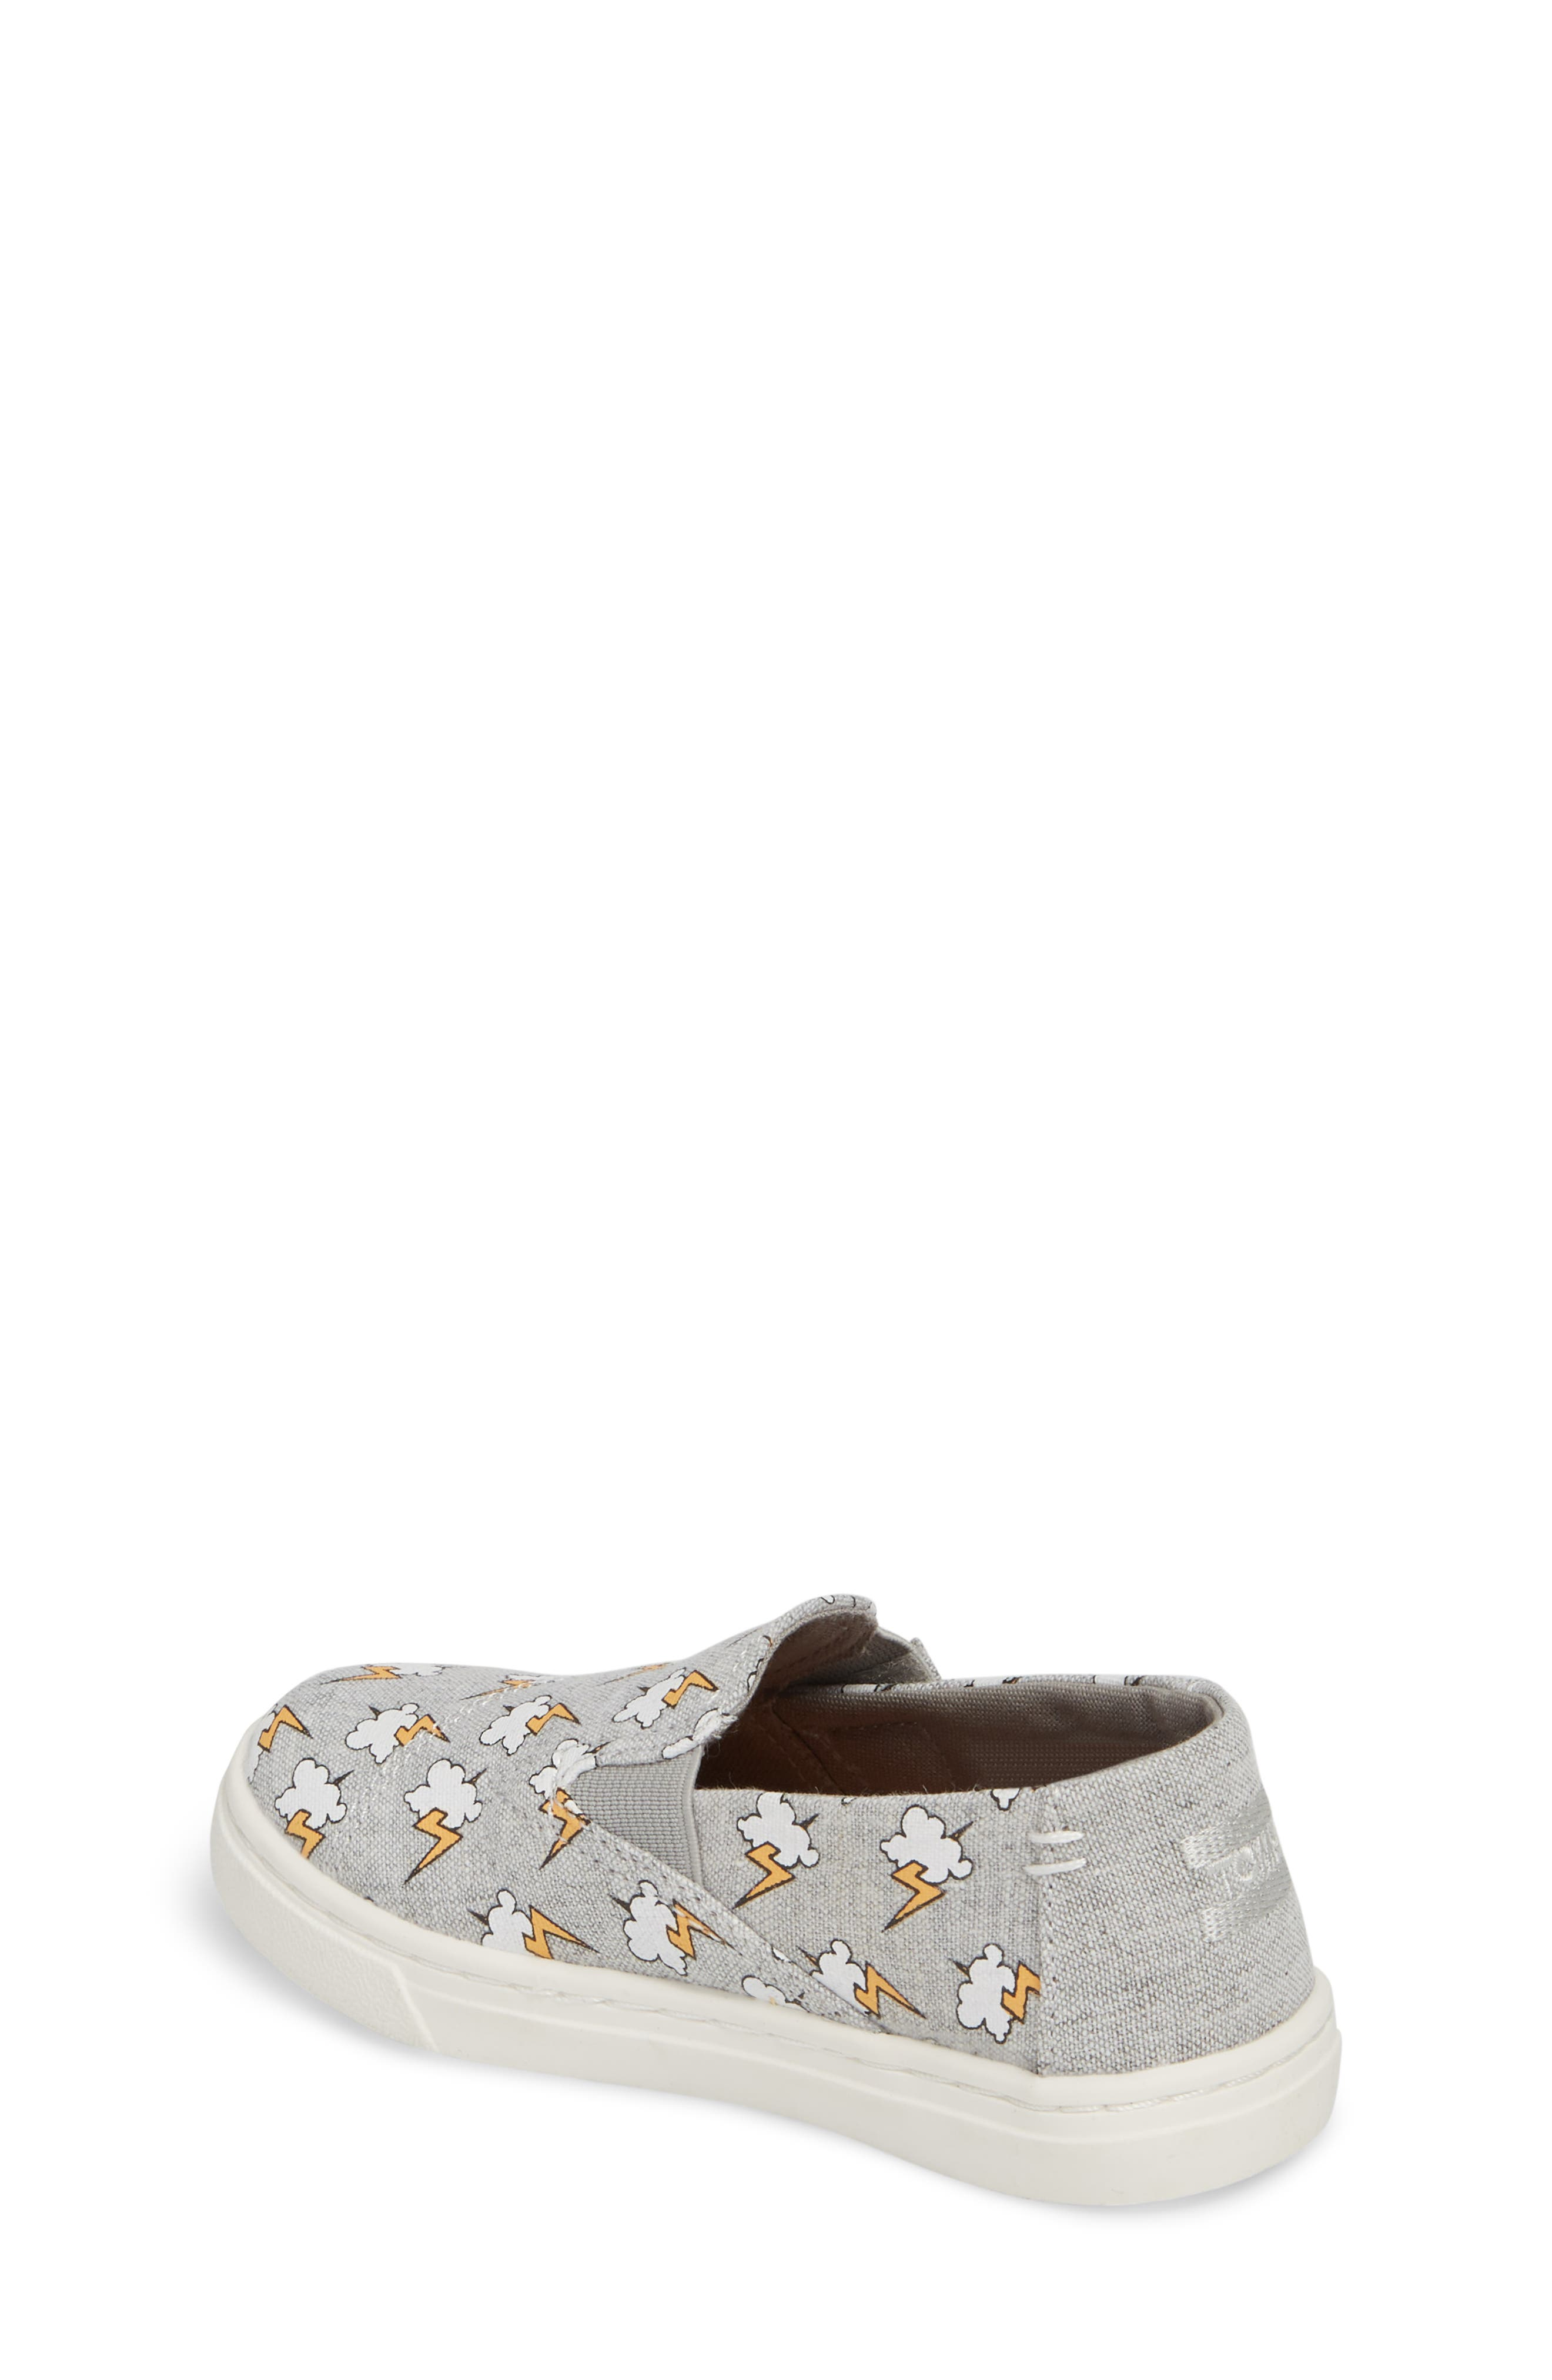 cribs walker crib shoes baby c toddler nordstrom style toms shoe